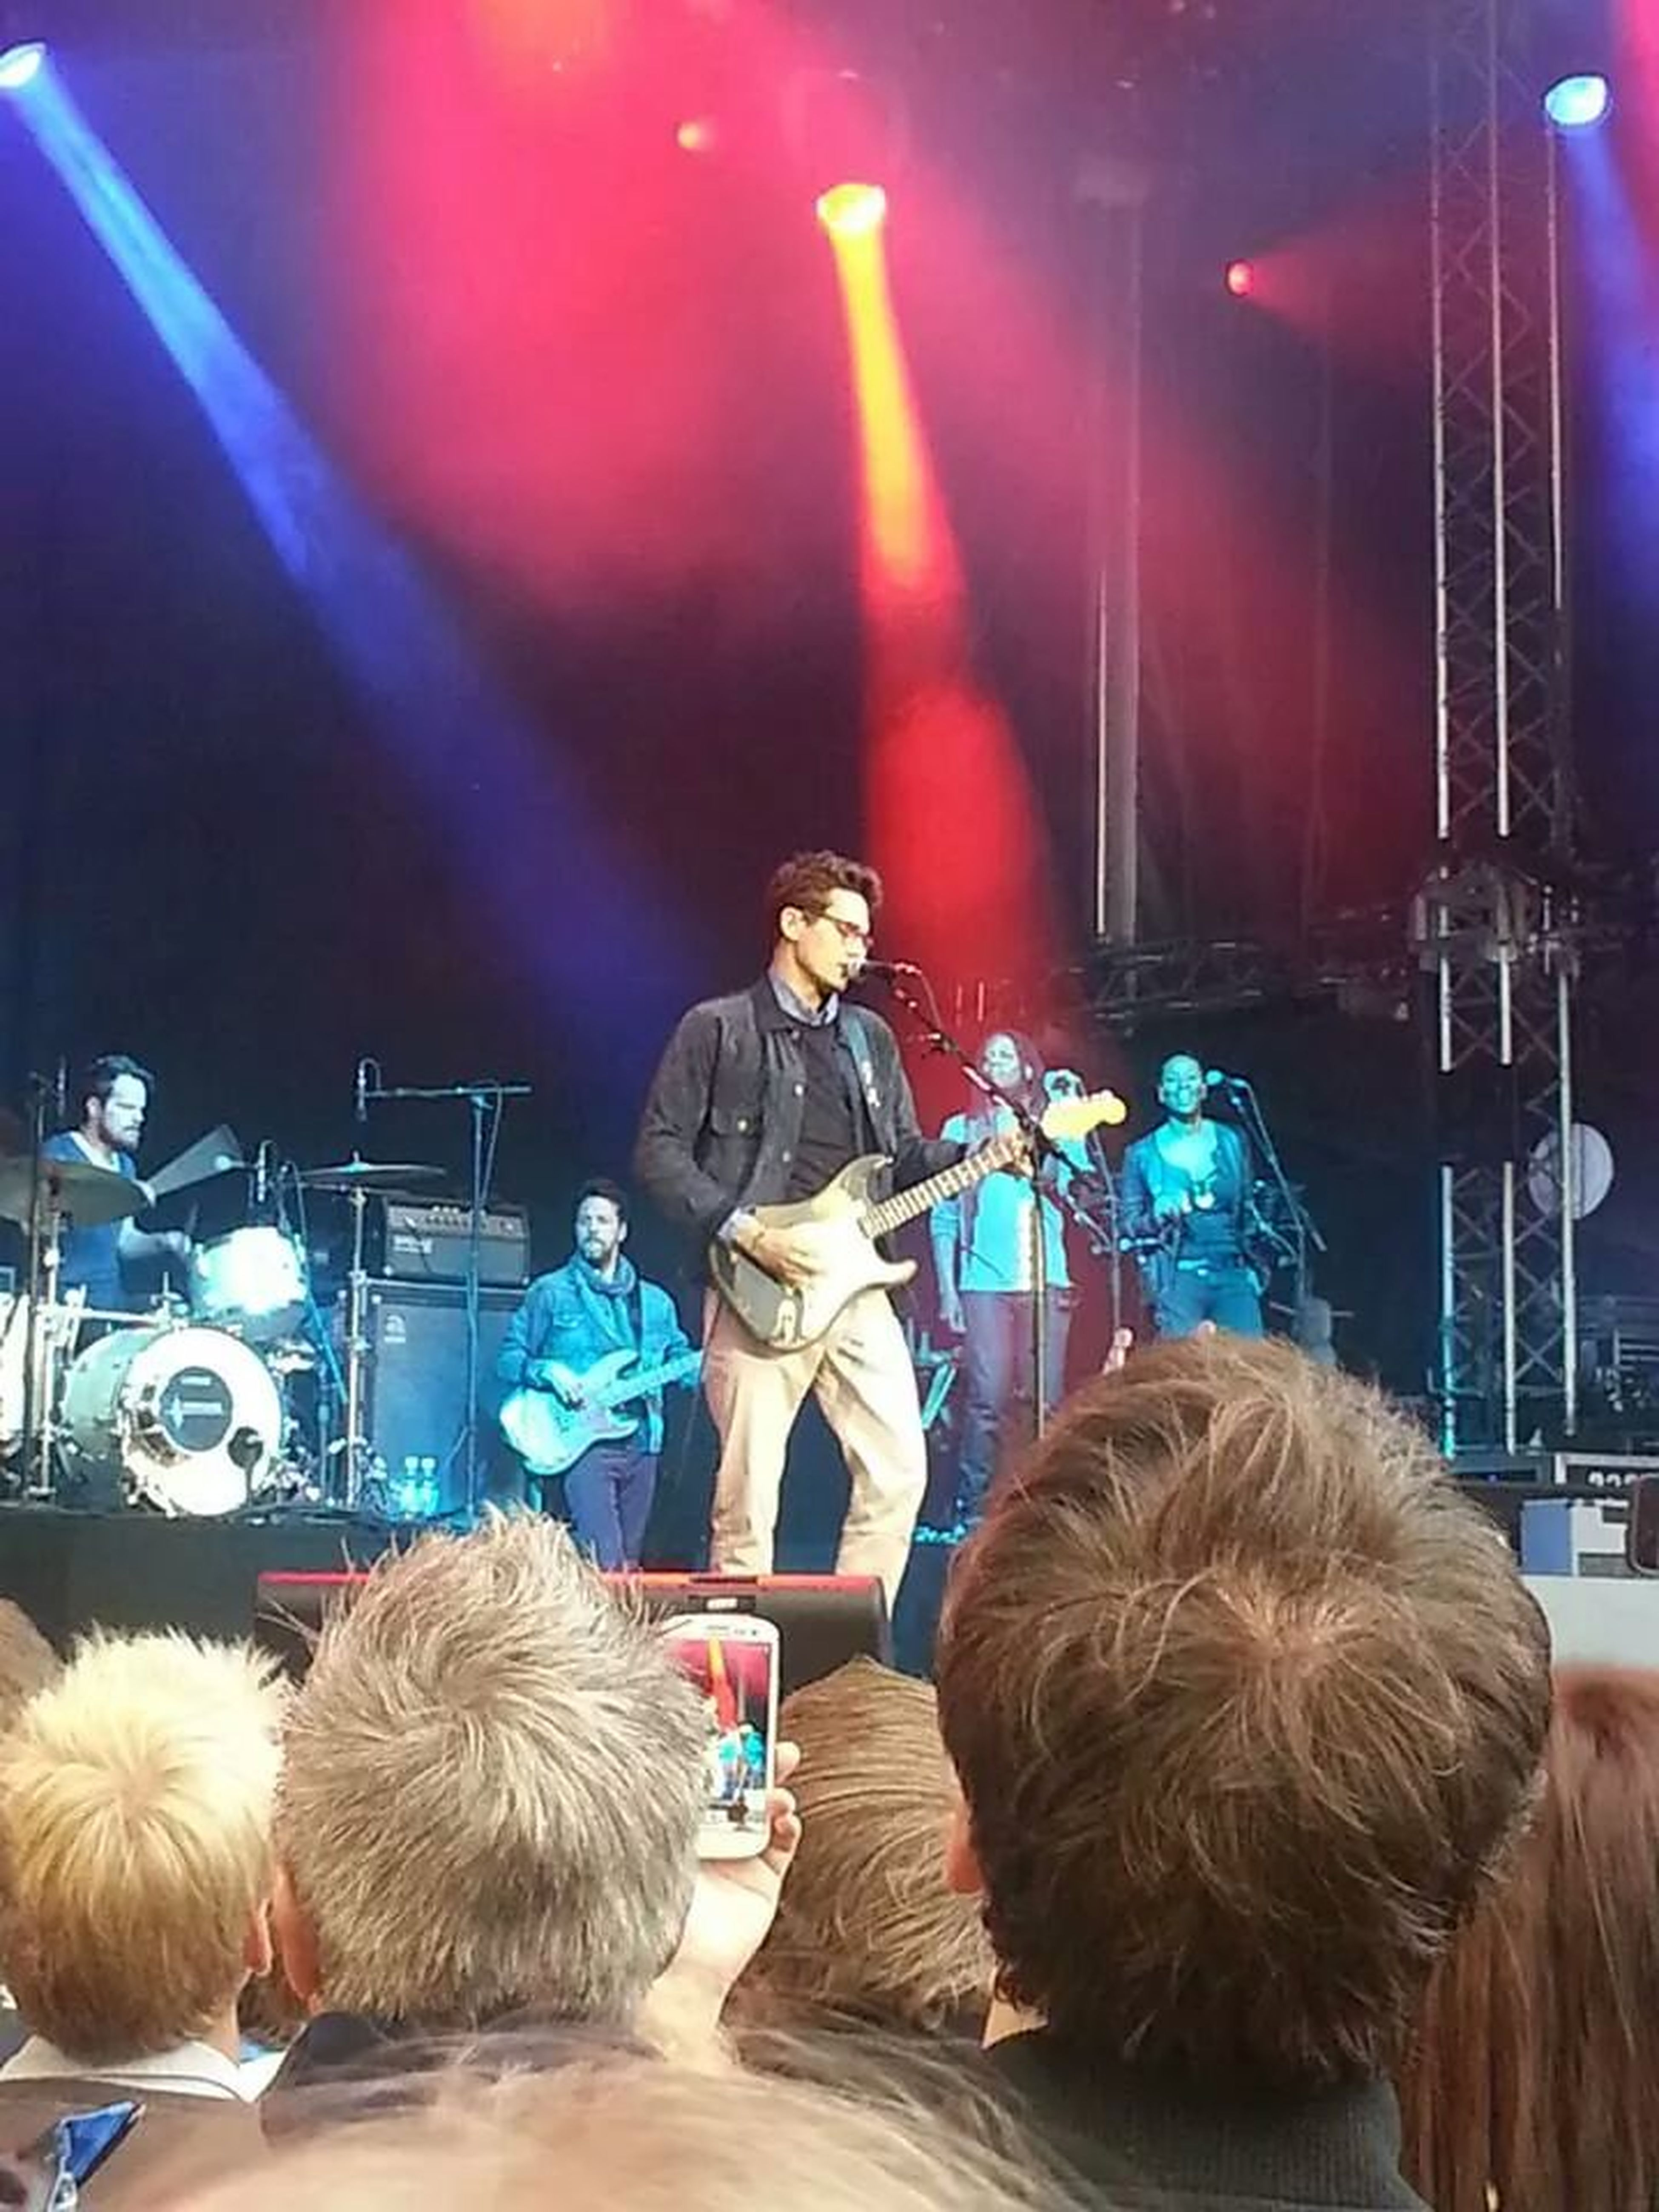 I went to see John Mayer one more time, such a great gig, had the time of my life! John Mayer Johnmayer Music Festival Bergen,Norway